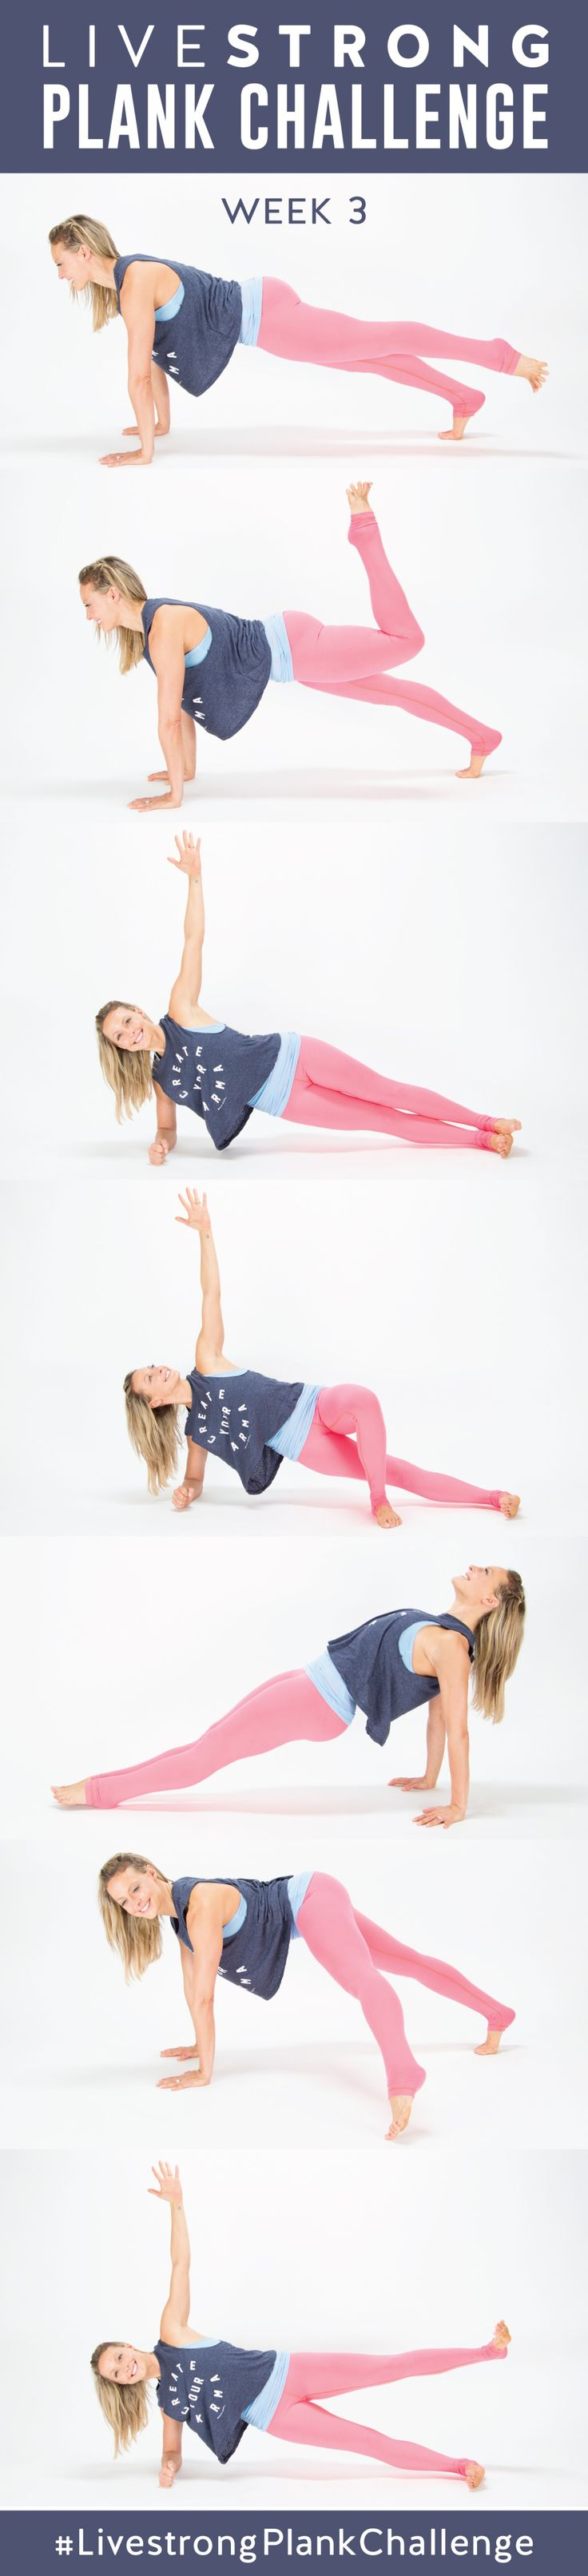 282 best images about fitness one sheets on pinterest for Plank muscles worked diagram